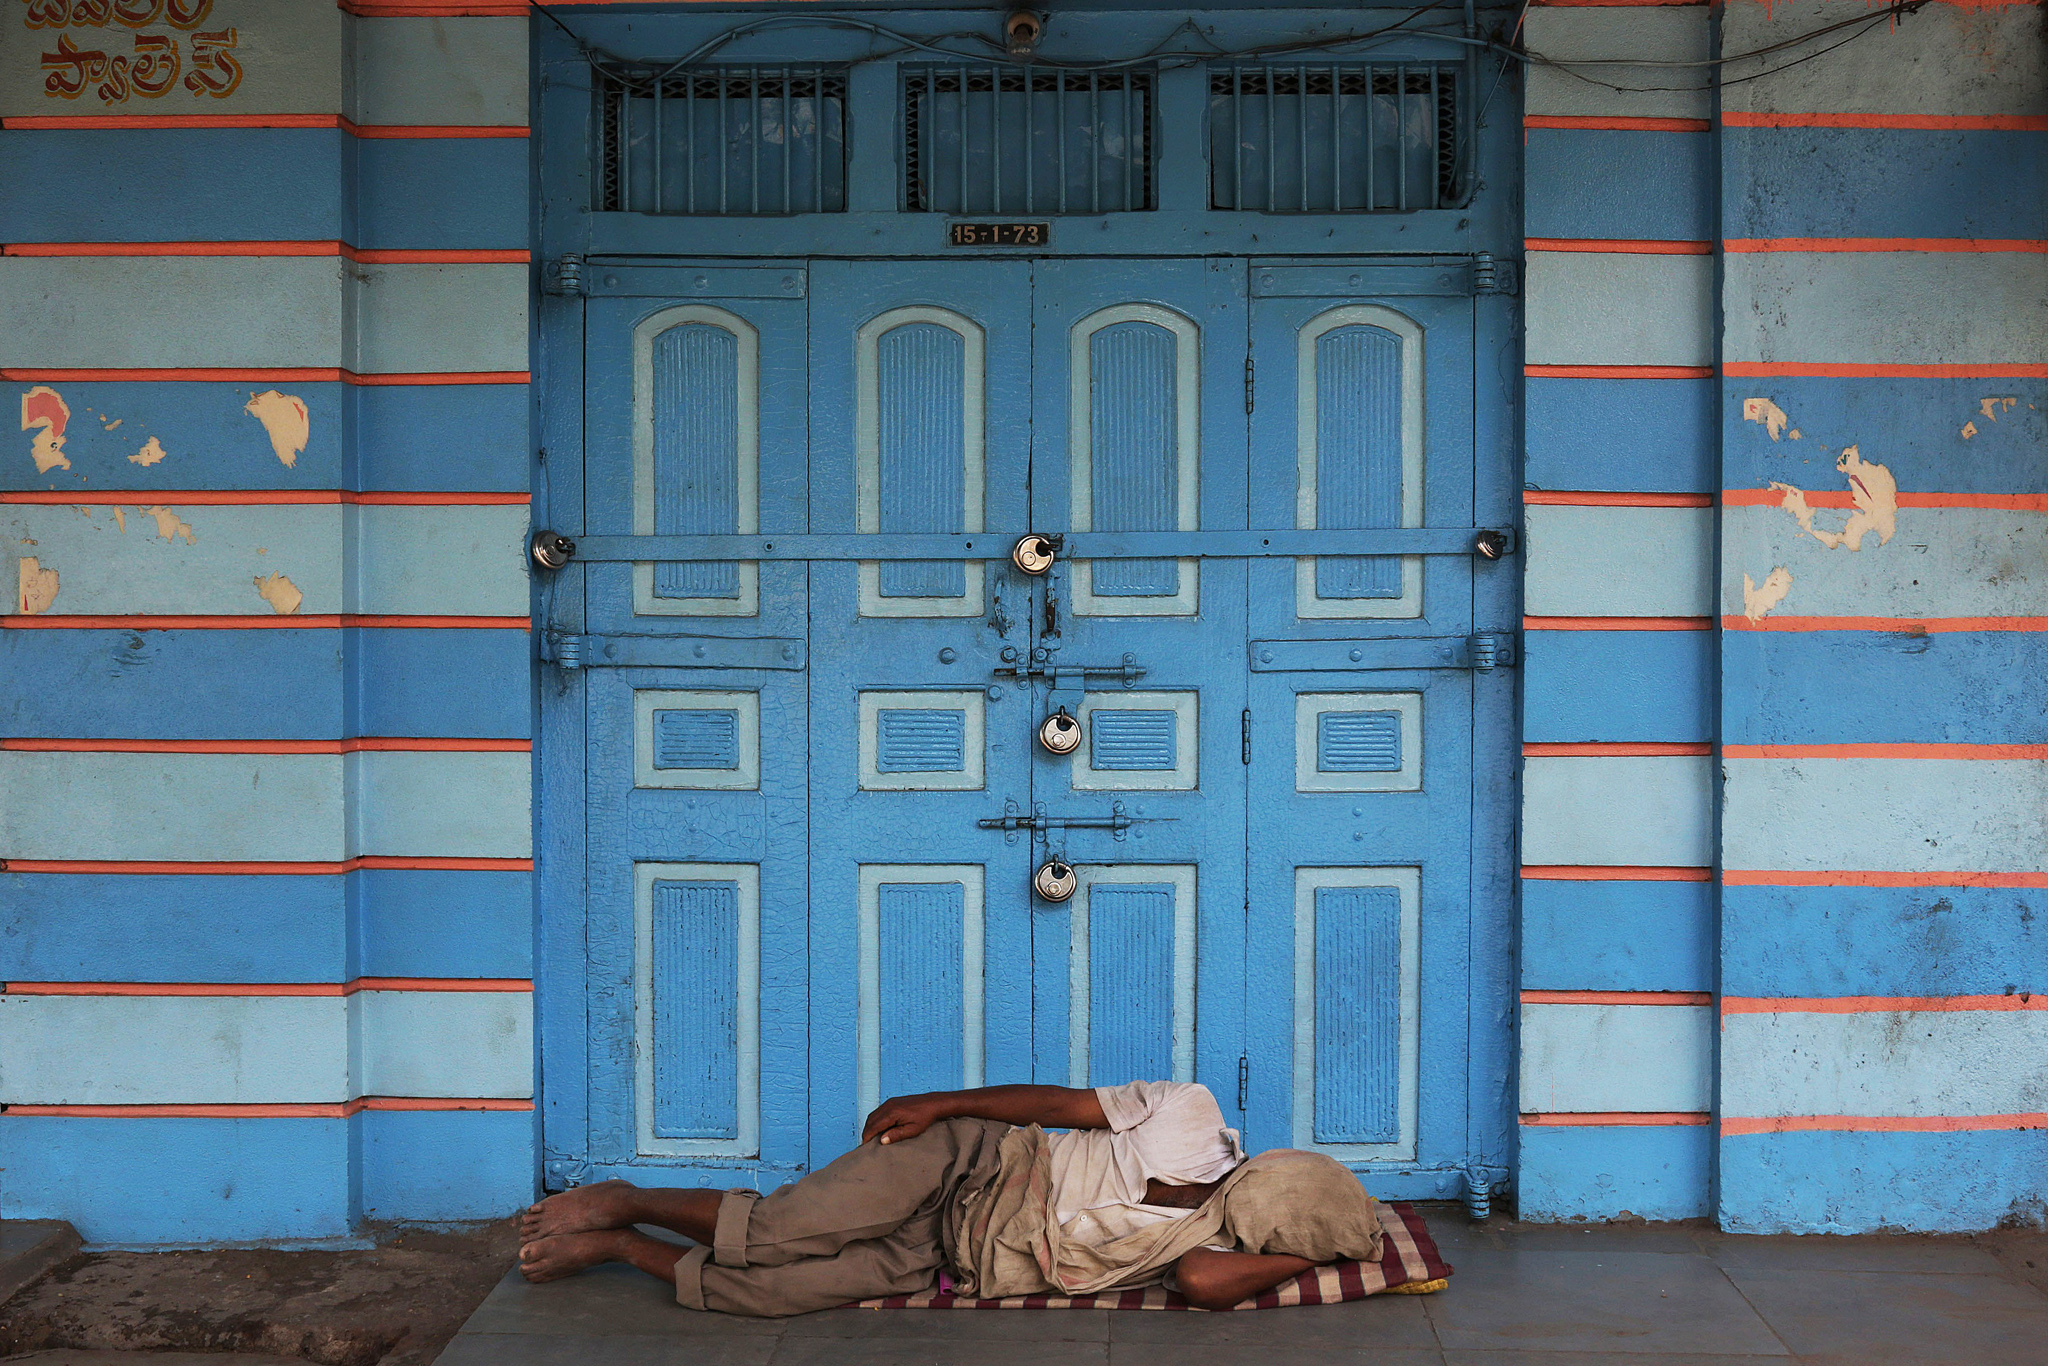 A man sleeps in front of a closed shop in Hyderabad, India, Tuesday, Aug.19, 2014. The city and most parts of the newly created state of Telangana remained shut down Tuesday in view of a household survey undertaken by the new government. (AP Photo/Mahesh Kumar A.)